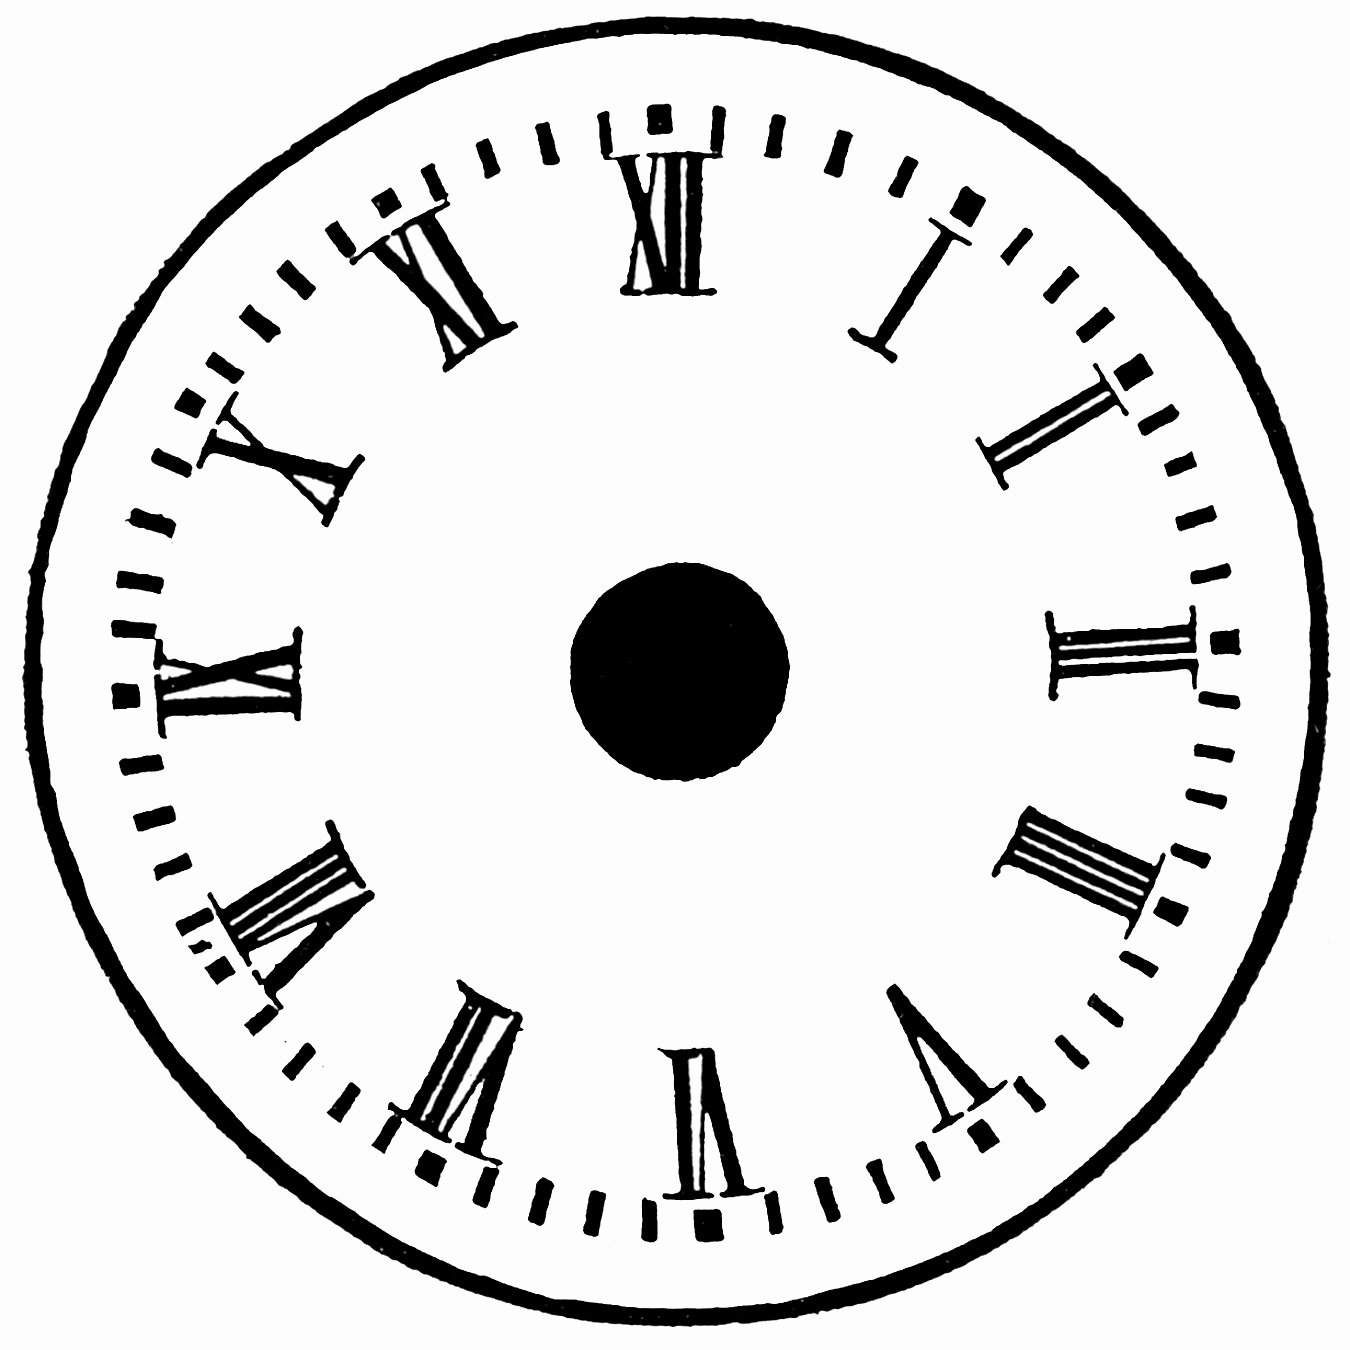 Free Printable Clock Faces Beautiful the Lavender Tub Picmonkey Fun Craft Effects for Free